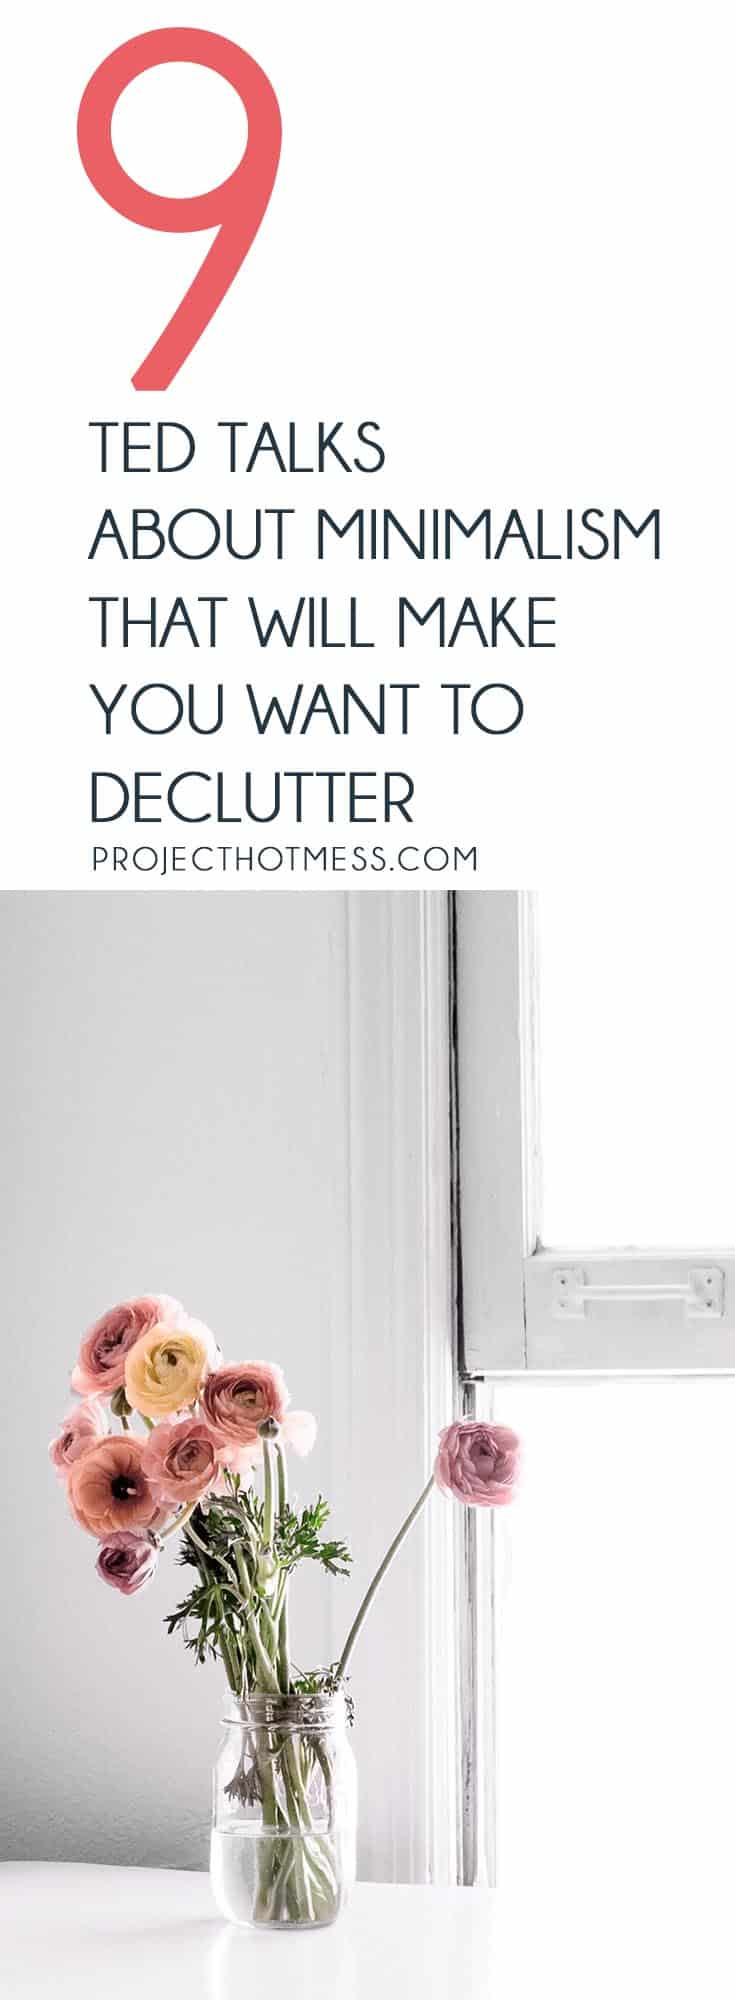 Need some decluttering inspiration to get your minimalist lifestyle going? These TED Talks about minimalism will make you want to declutter and simplify your home and your life right now.